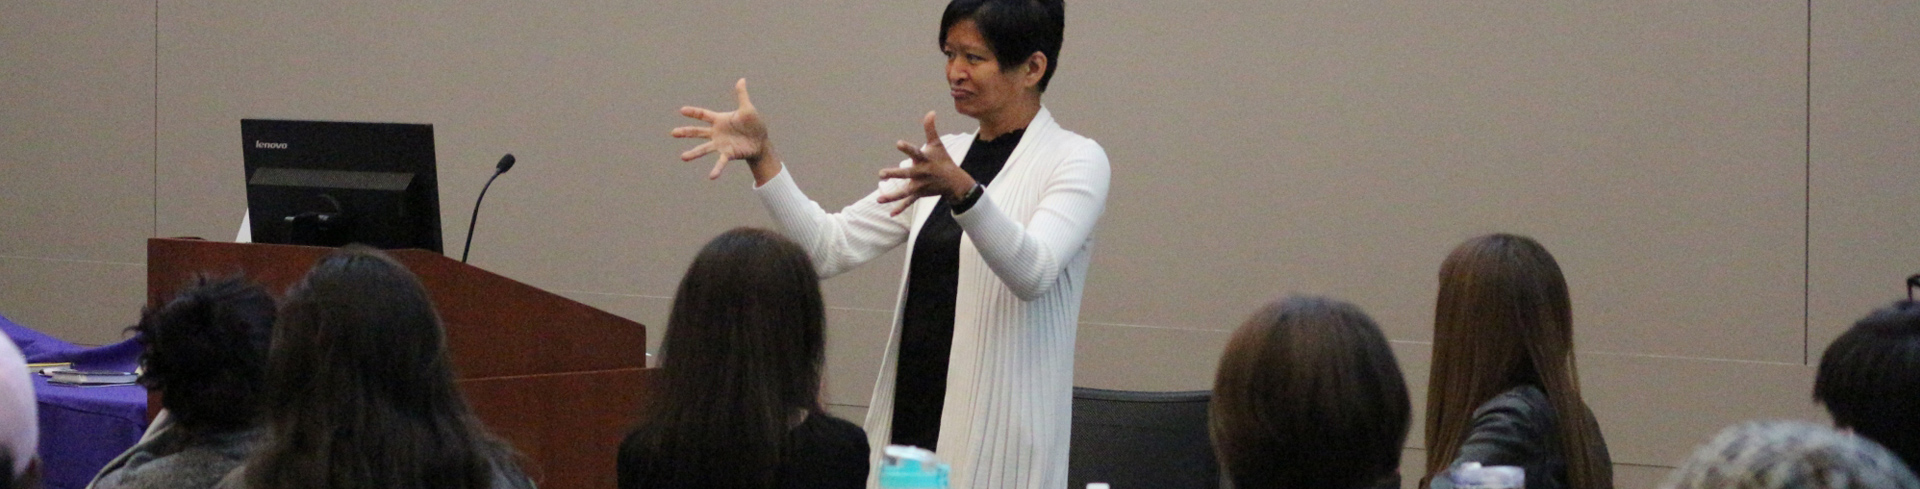 A women is providing some training on Sign Language to a group of people.